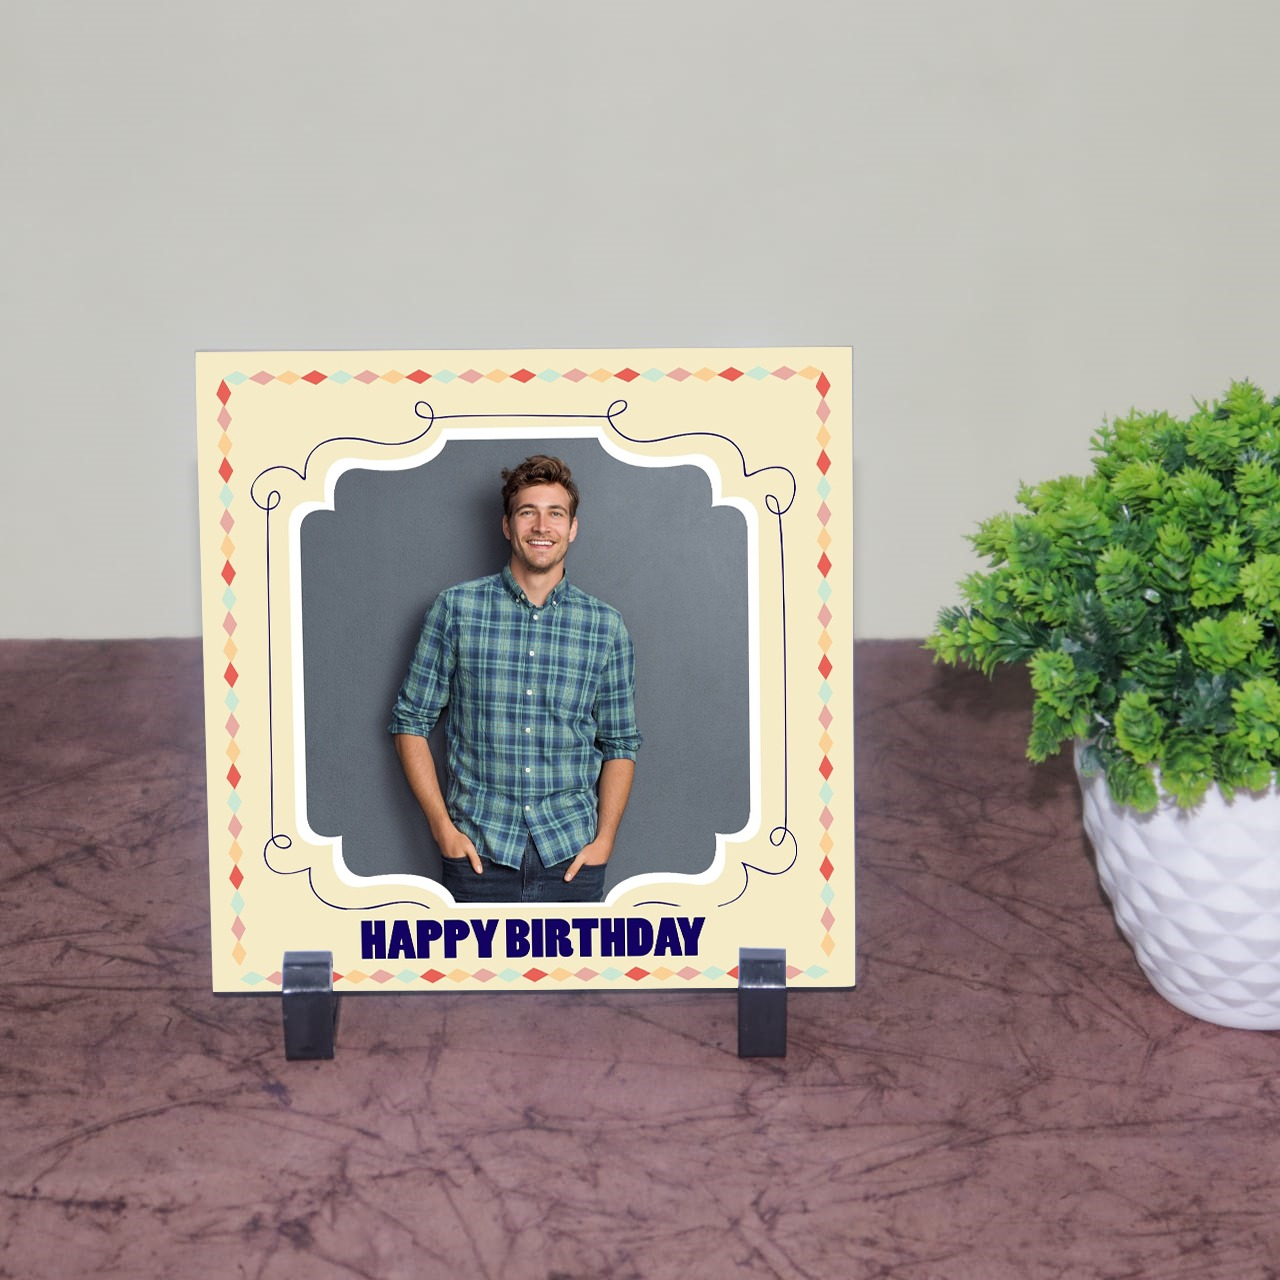 Personalized Birthday Tile